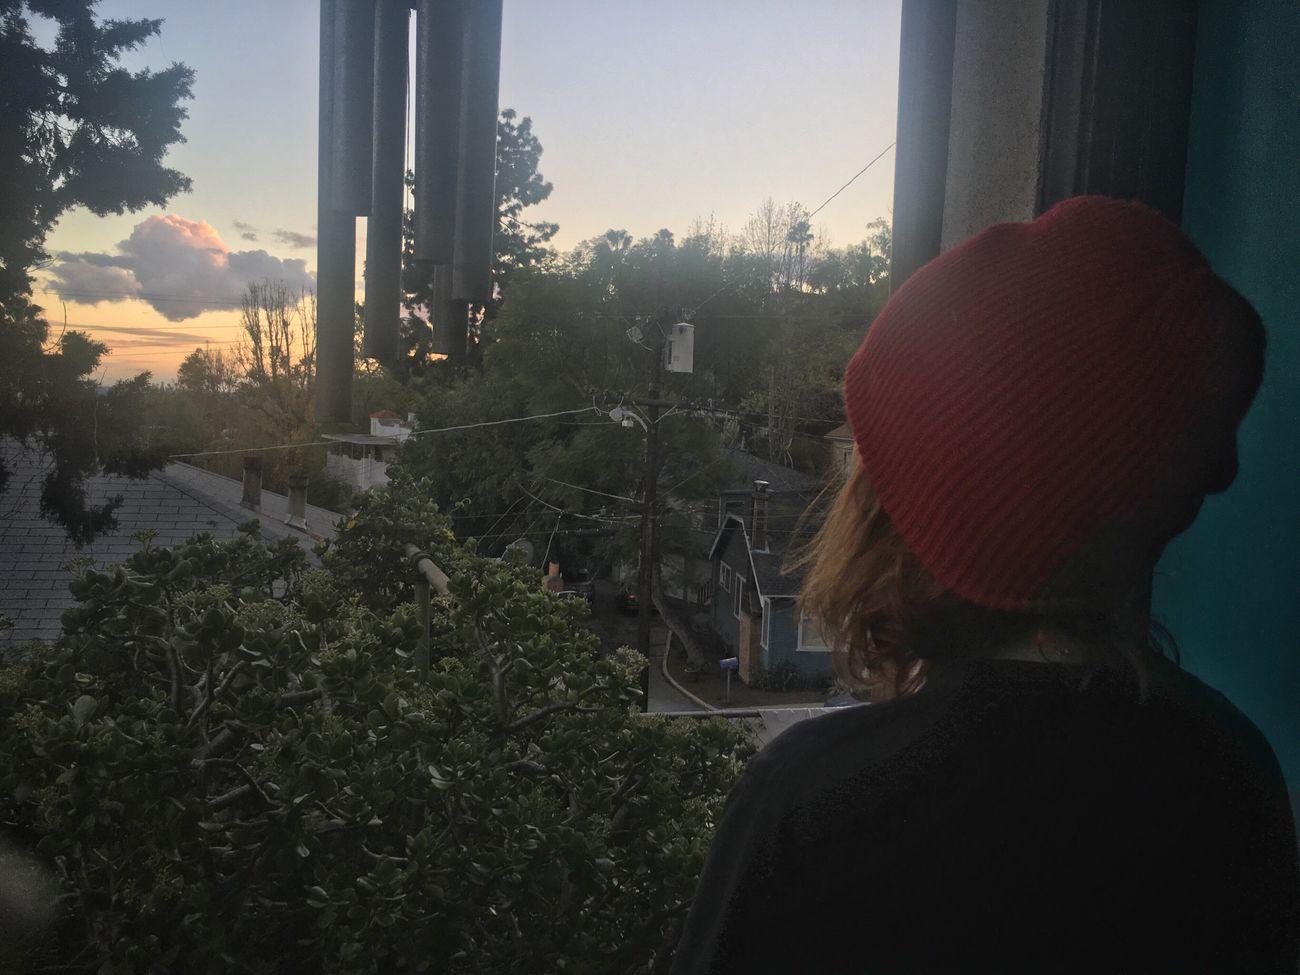 Sunset Rear View Real People Tree One Person Knit Hat Outdoors Lifestyles Day People Cityscape Wind Chimes Porch Watching Nature Calm Twilight Los Ángeles Los Angeles, California Jade Plant Palm Tree California Beanie Woman Lesbian